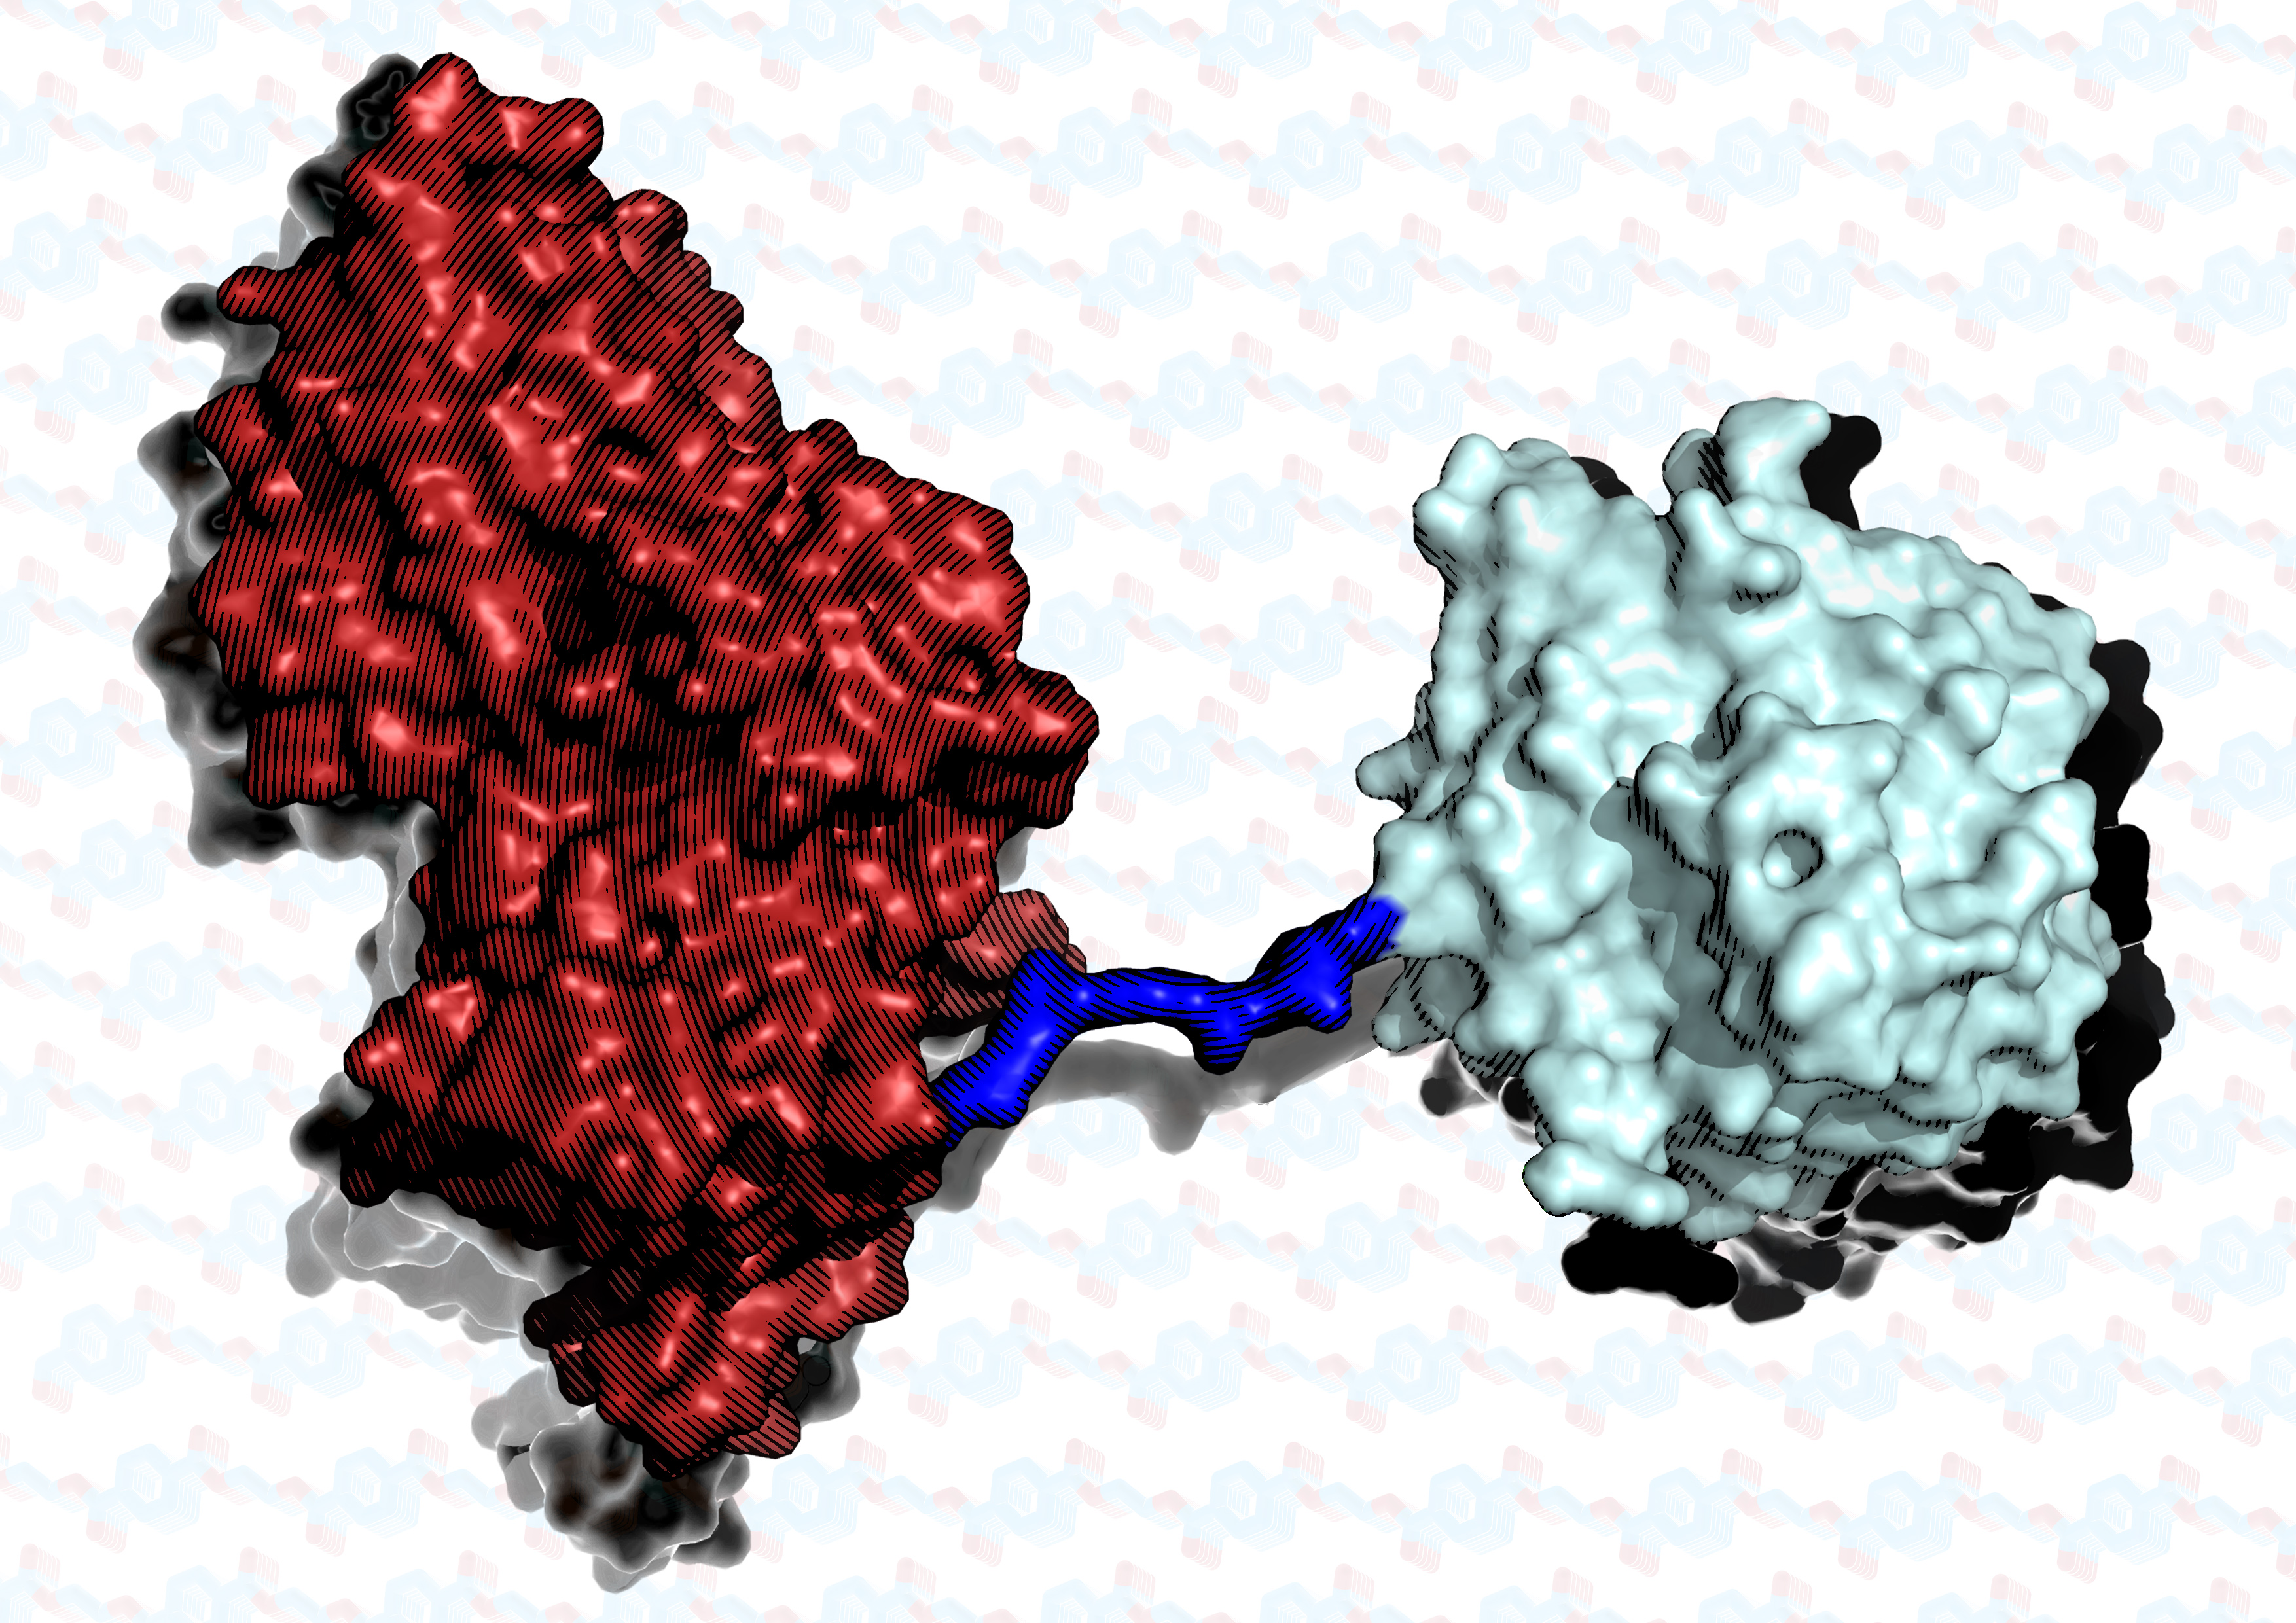 The super enzyme is two proteins joined together